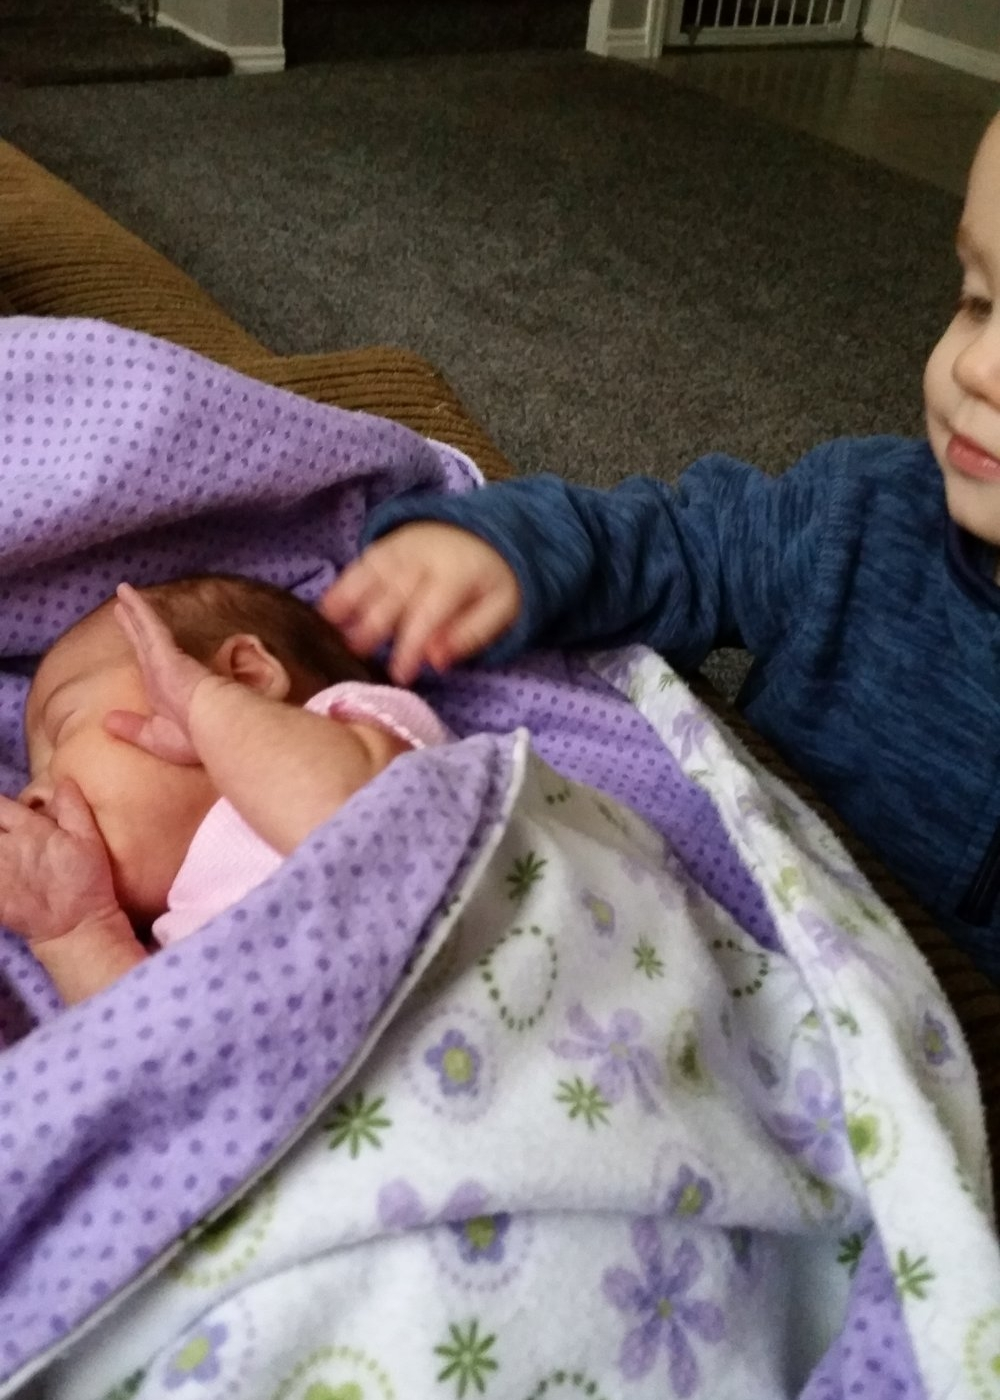 prepare older sibling for new baby